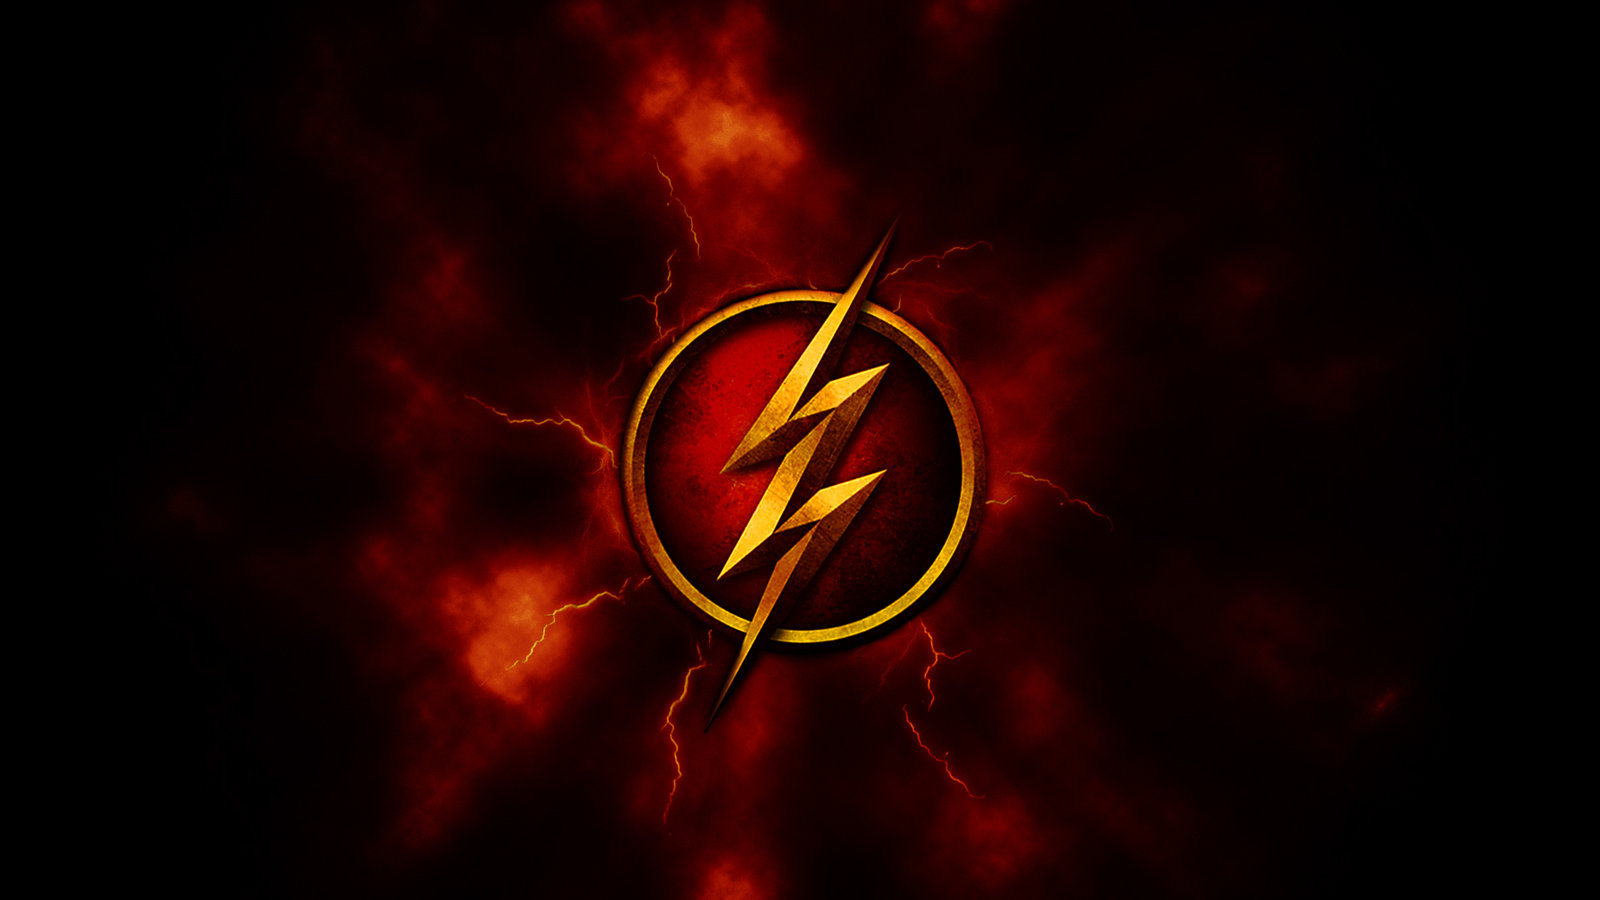 Red and Gold Flash Logo Wallpaper 1920x1080 by DeviantHitman83 on 1600x900